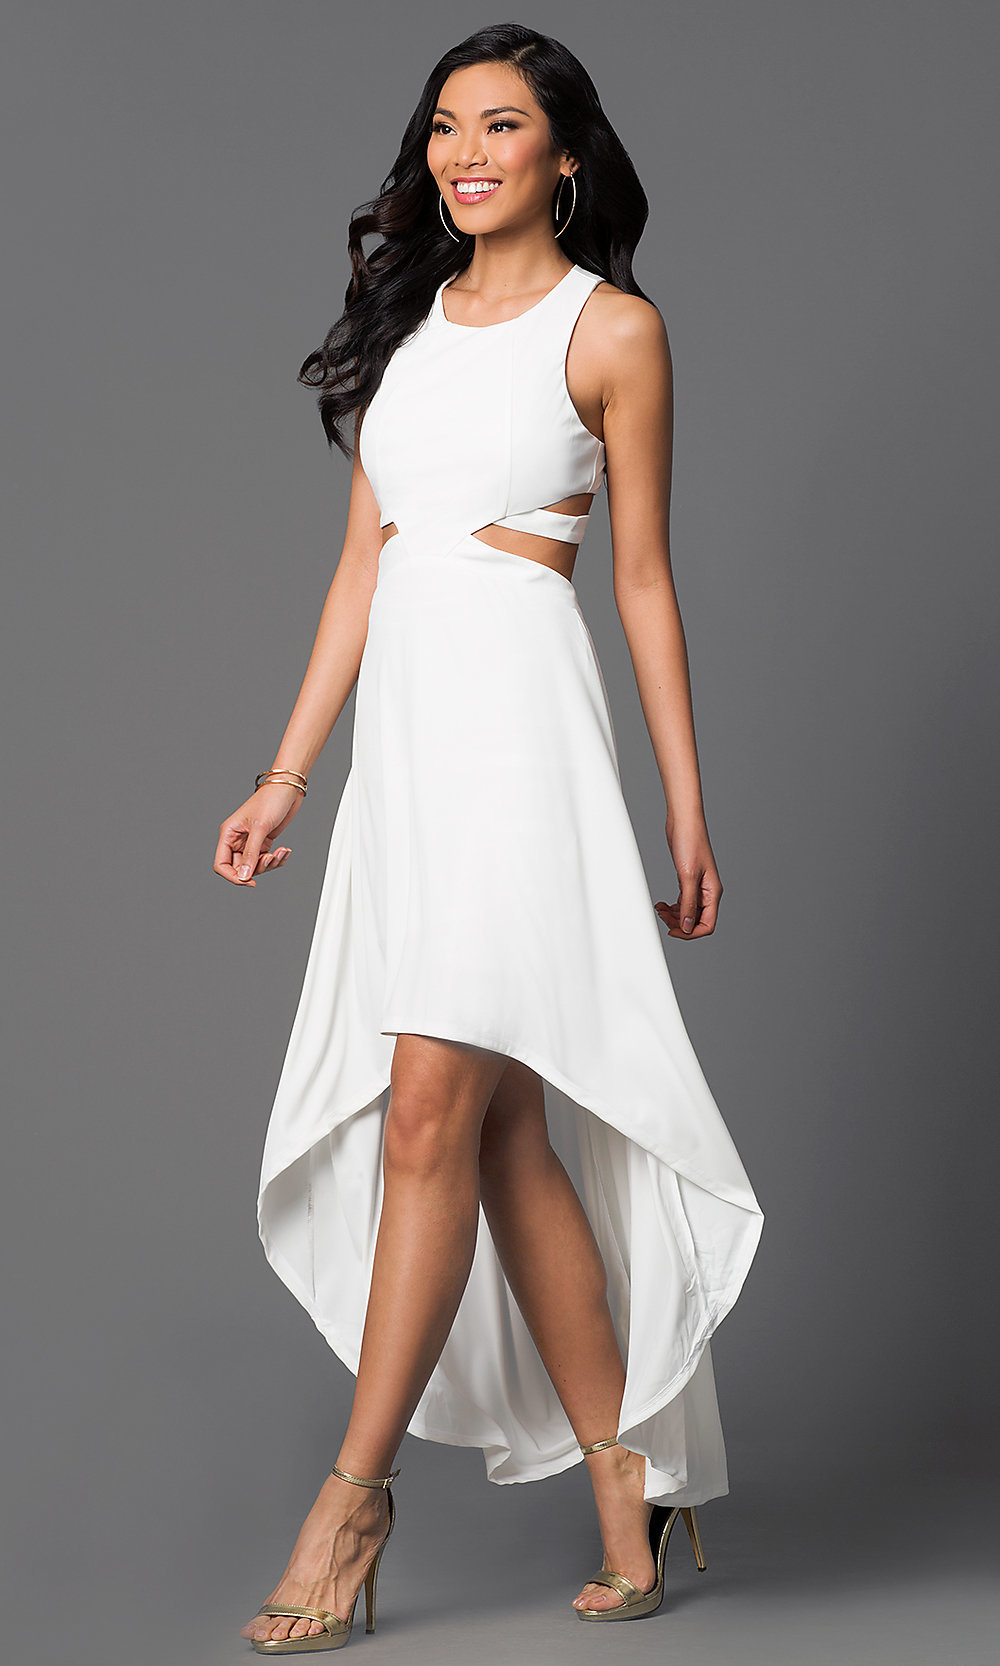 Wedding Ivory Dress cheap ivory high low homecoming dress promgirl hover to zoom